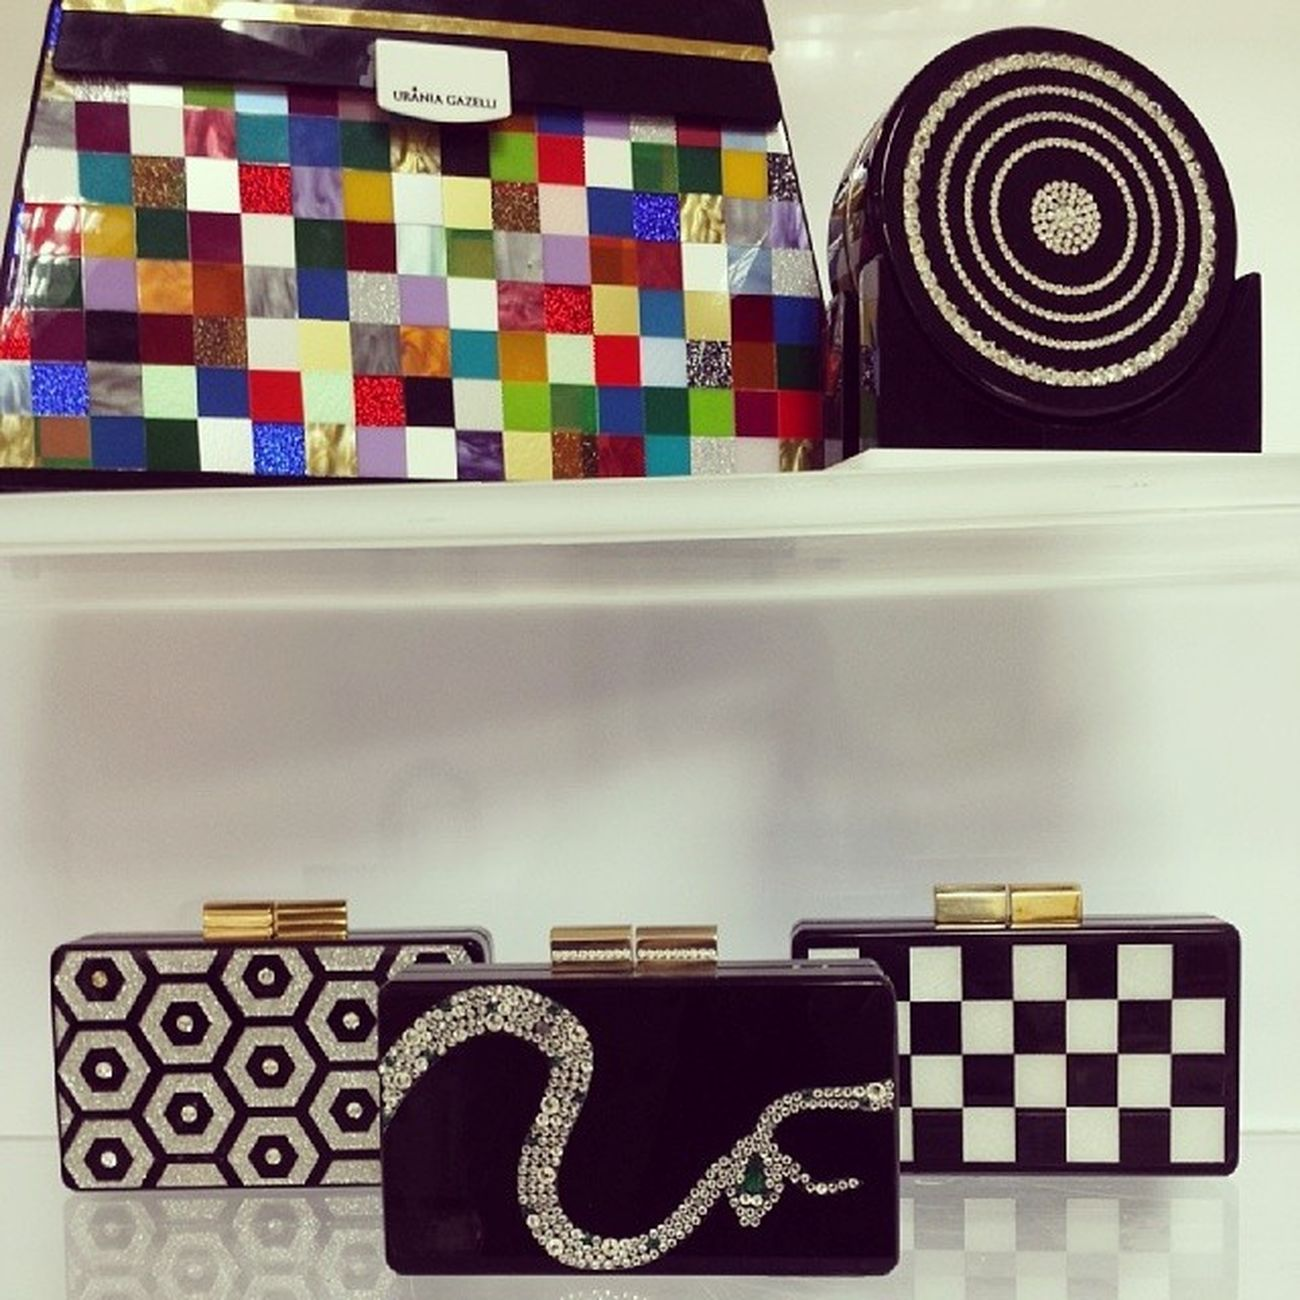 Winter essentials... FW2013 together with a limited edition Kelly Bag Pixel! Flawless every single piece! Handmade with love and care! For my girls around the world!!! Buy the chessboard online at www.moreislove.com ??❤? Uraniagazelli Ladiesclutchyourself FW13 Instoresworldwide snake chessboard hexagon gazellakiaruntheworld